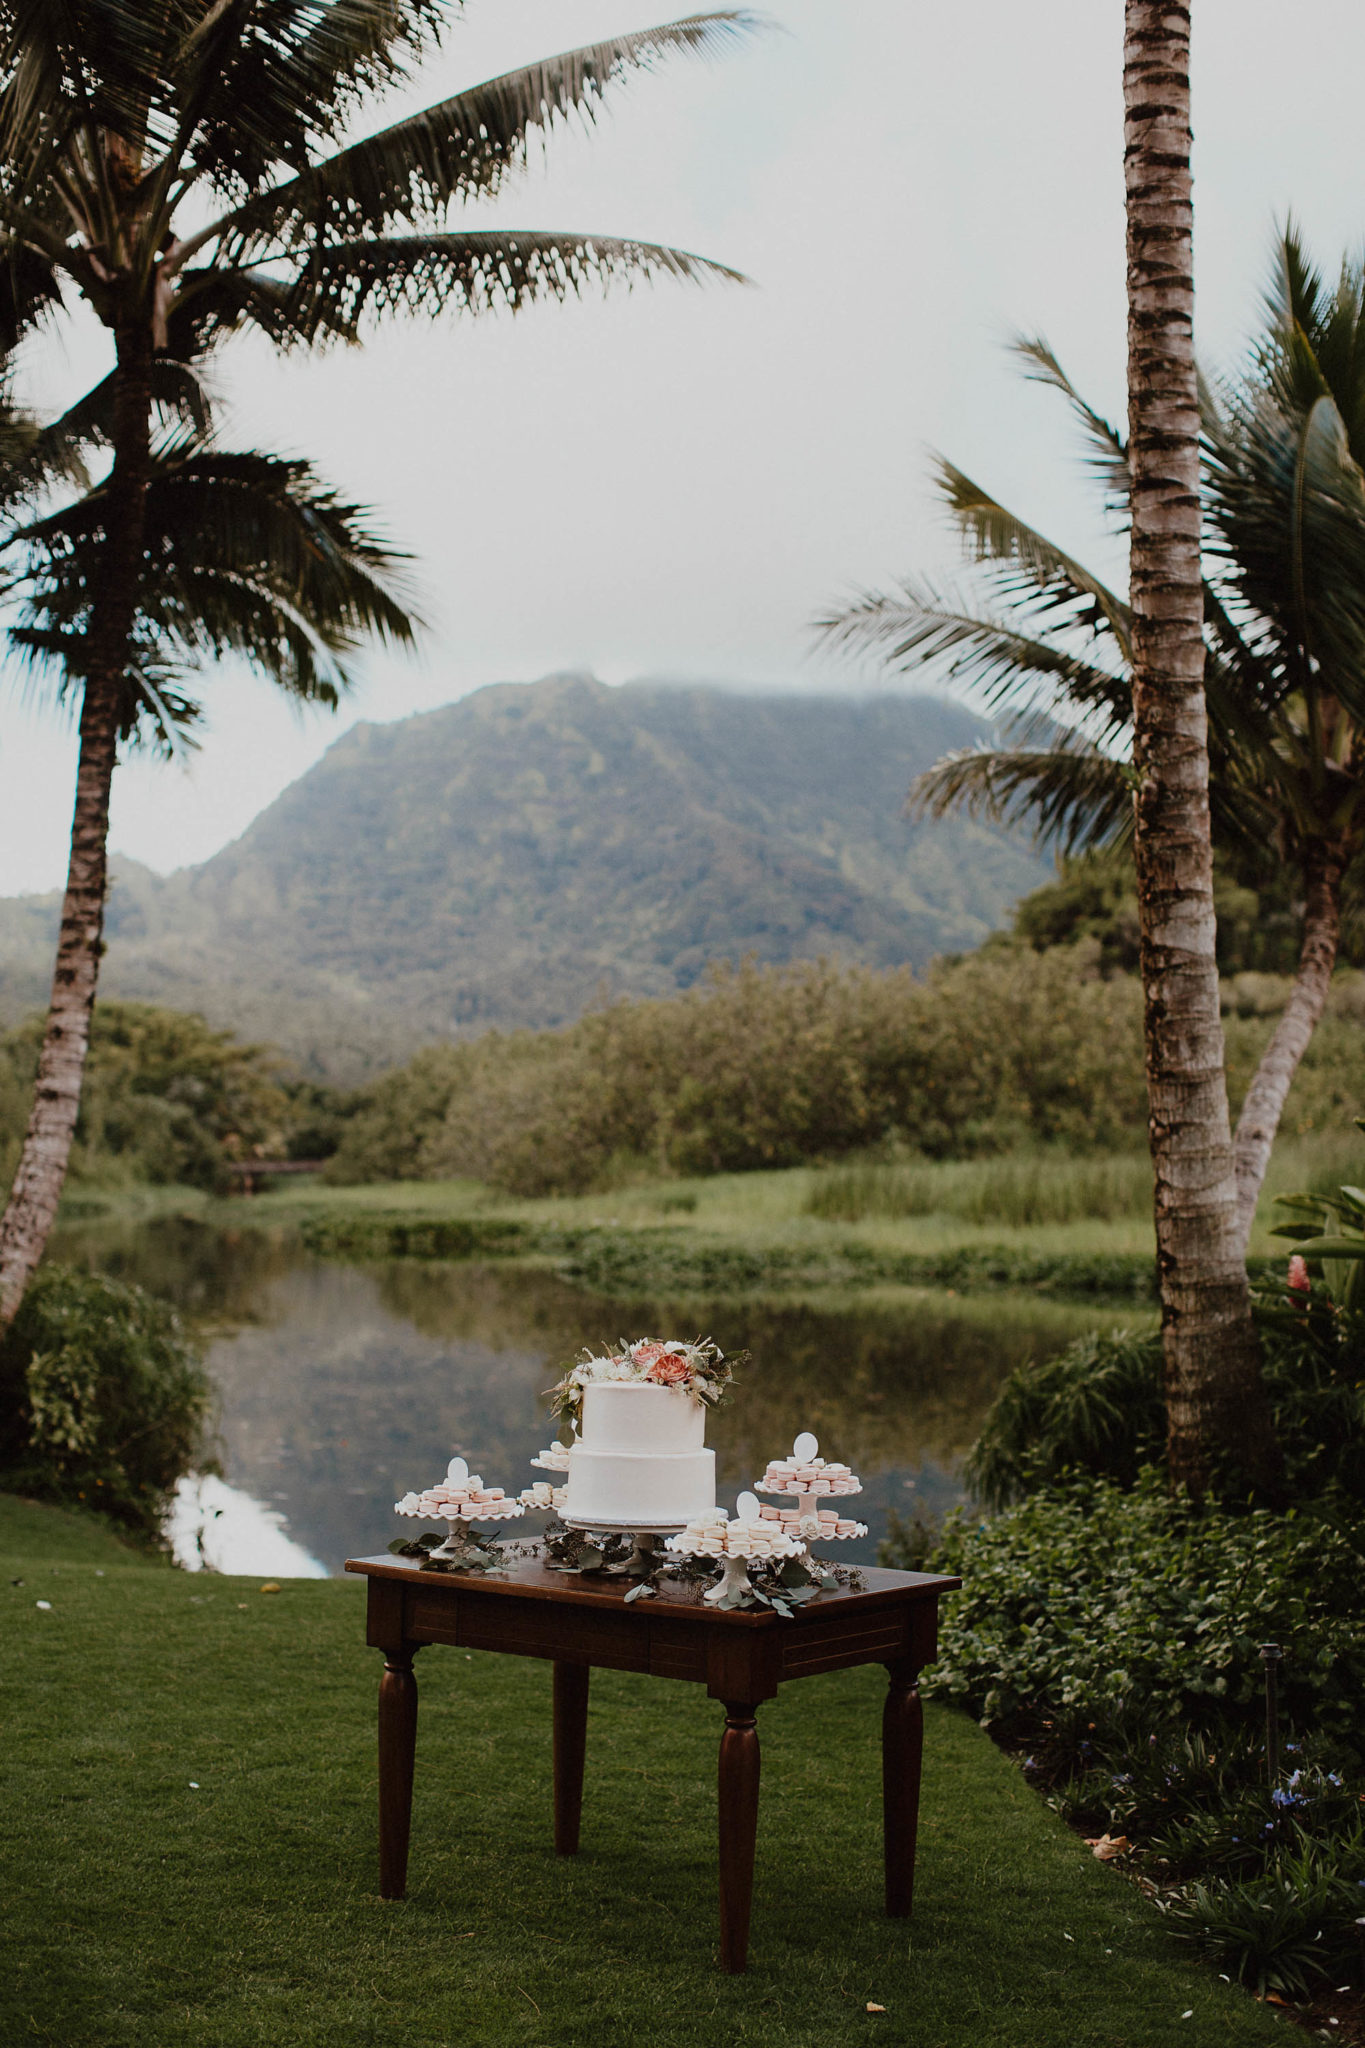 Dessert table blush and white floral cake with french macarons for wedding on north shore kauai hawaiii